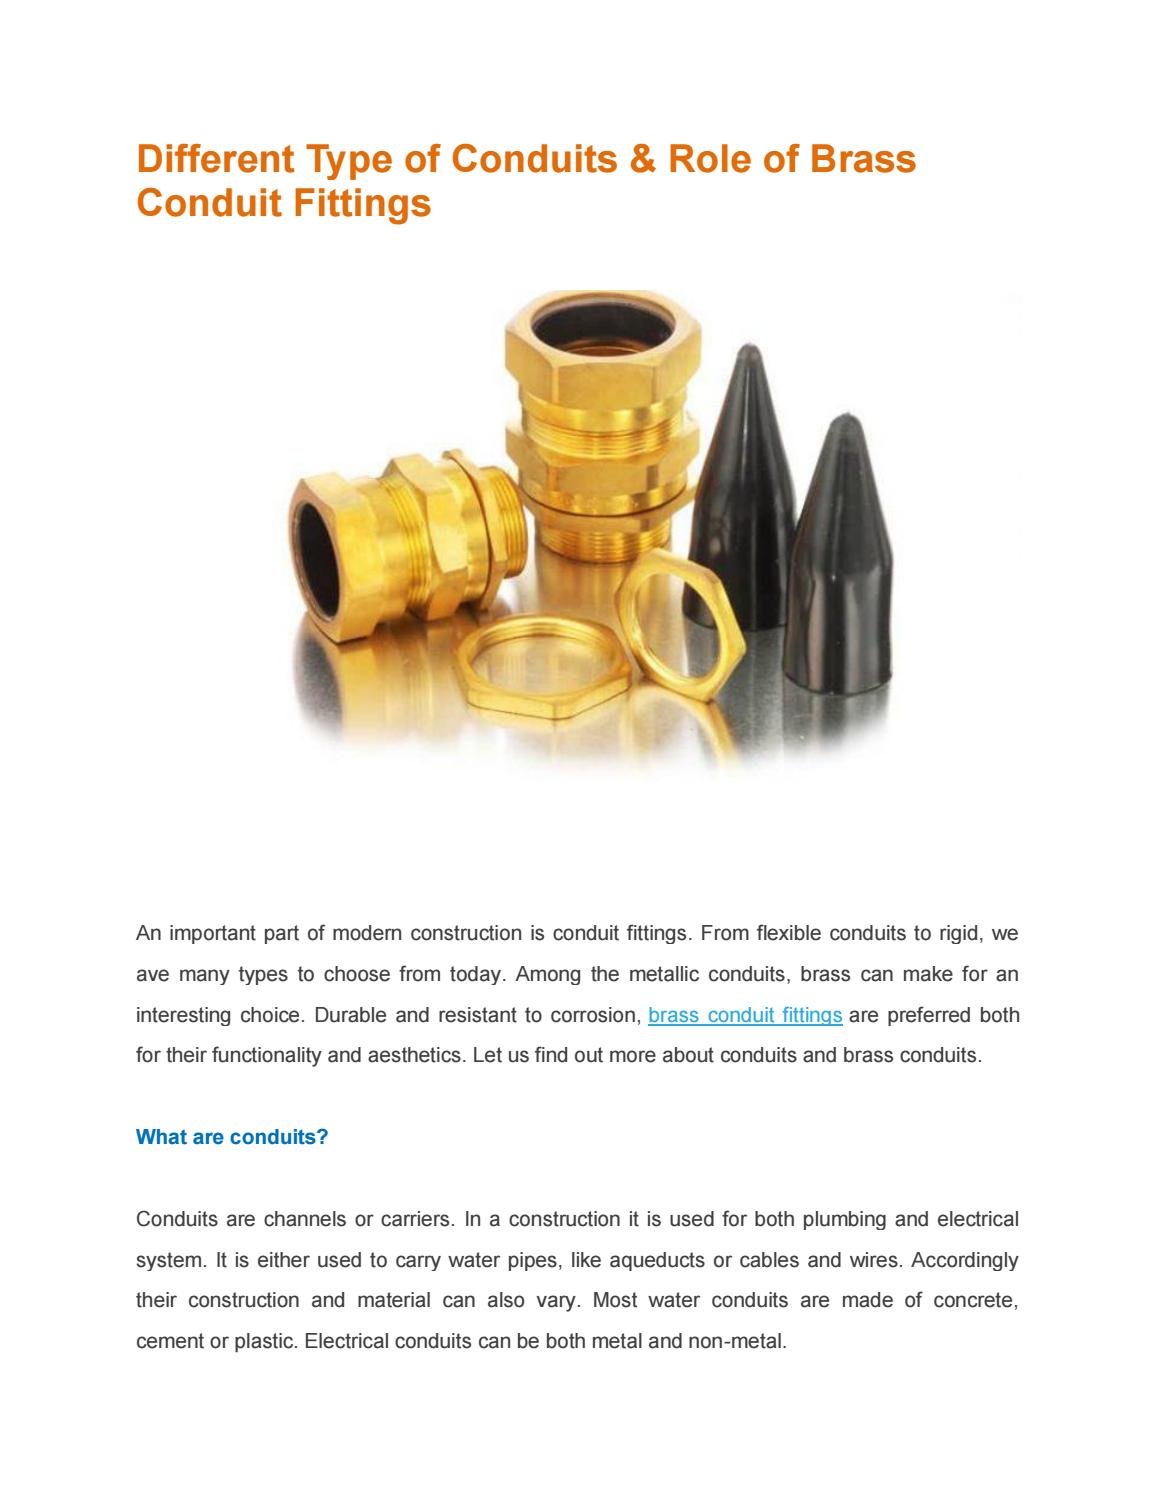 Different Type Of Conduits Role Brass Conduit Fittings By Electrical Pictures Pallega Issuu